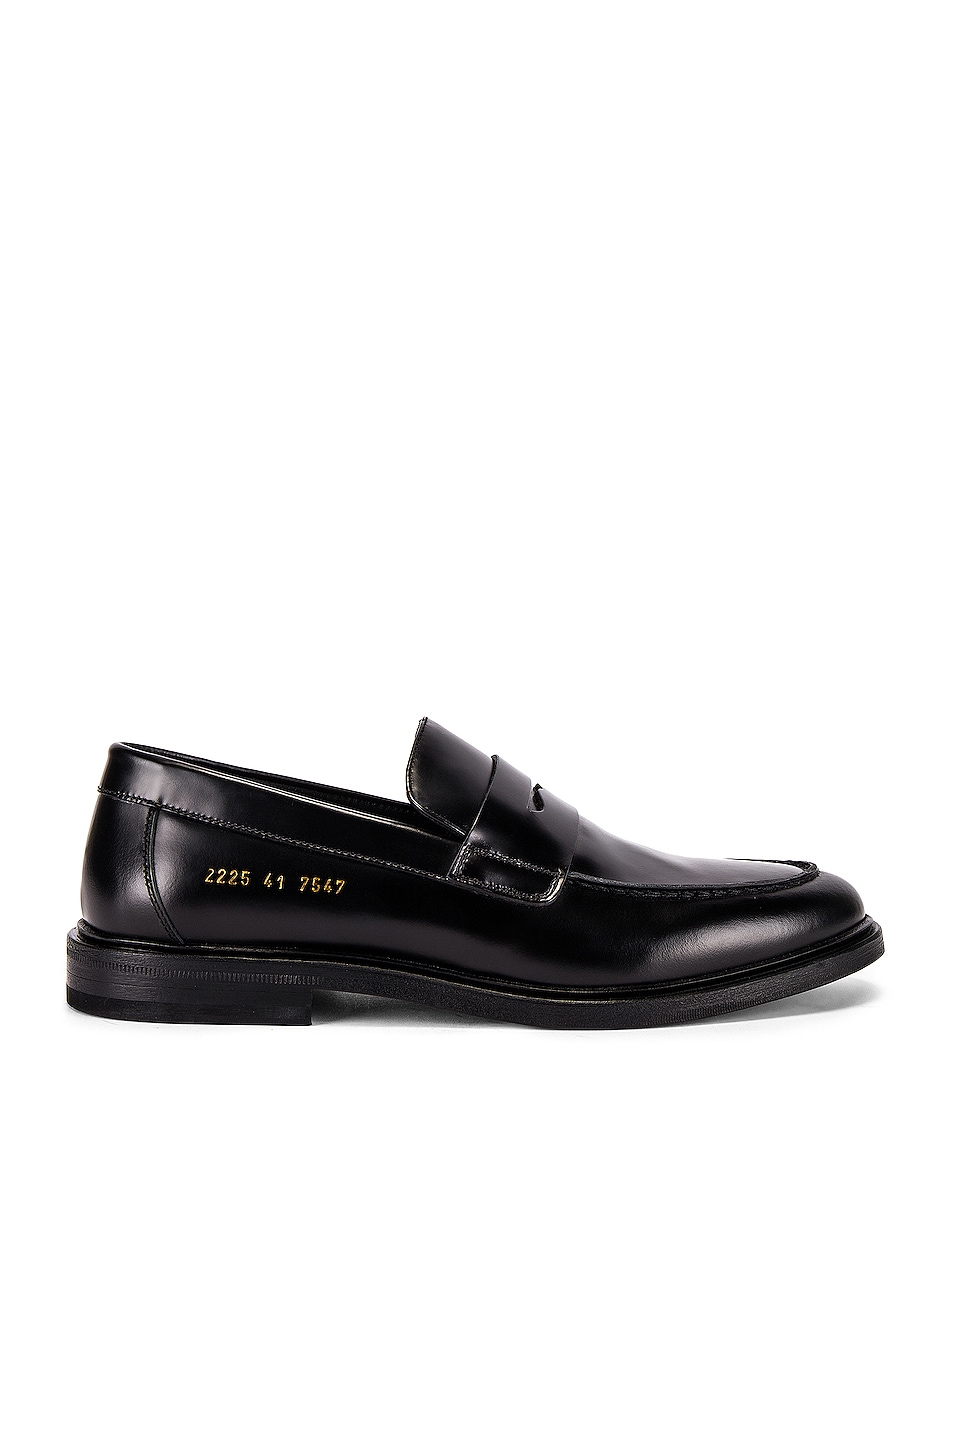 Image 1 of Common Projects Leather Loafer in Black